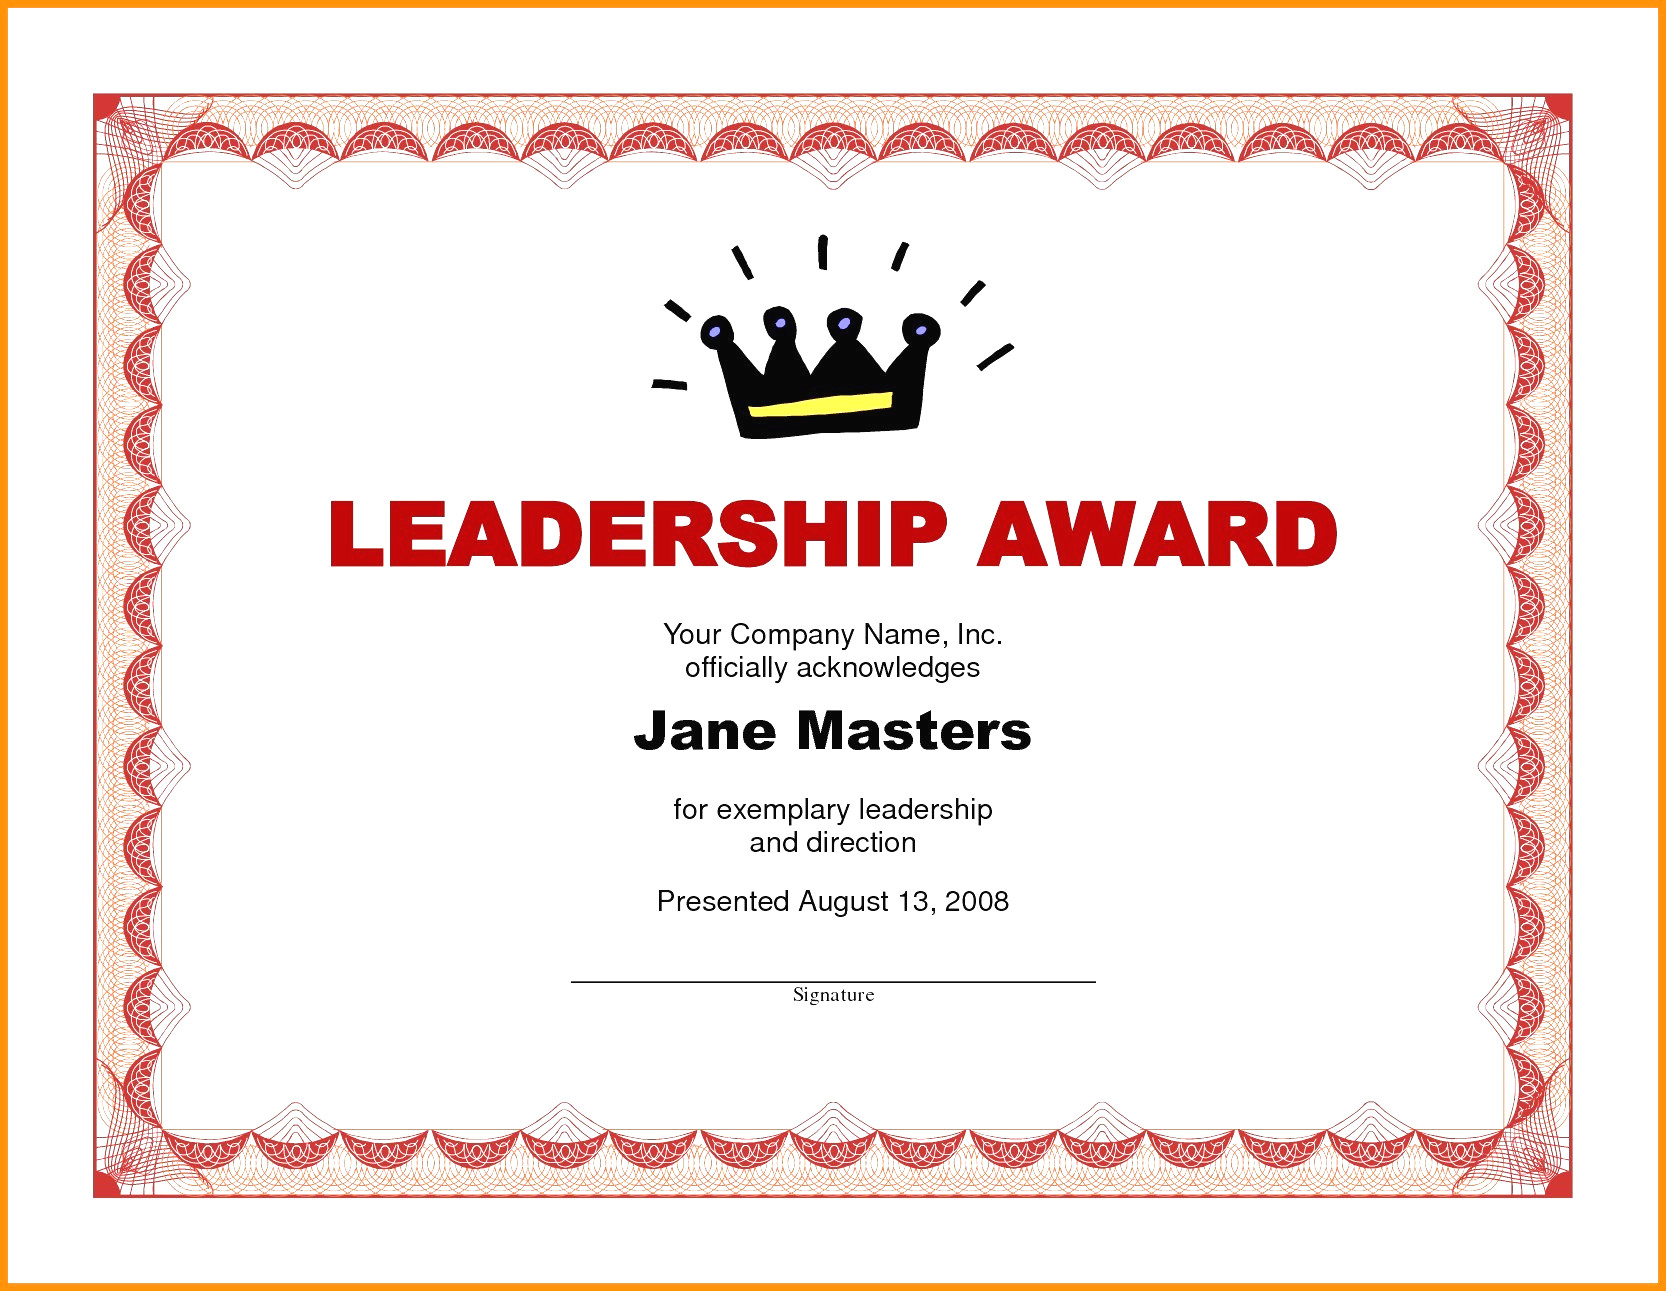 Award Certificate Template Word Free   Discover China Townsf With Leadership Award Certificate Template